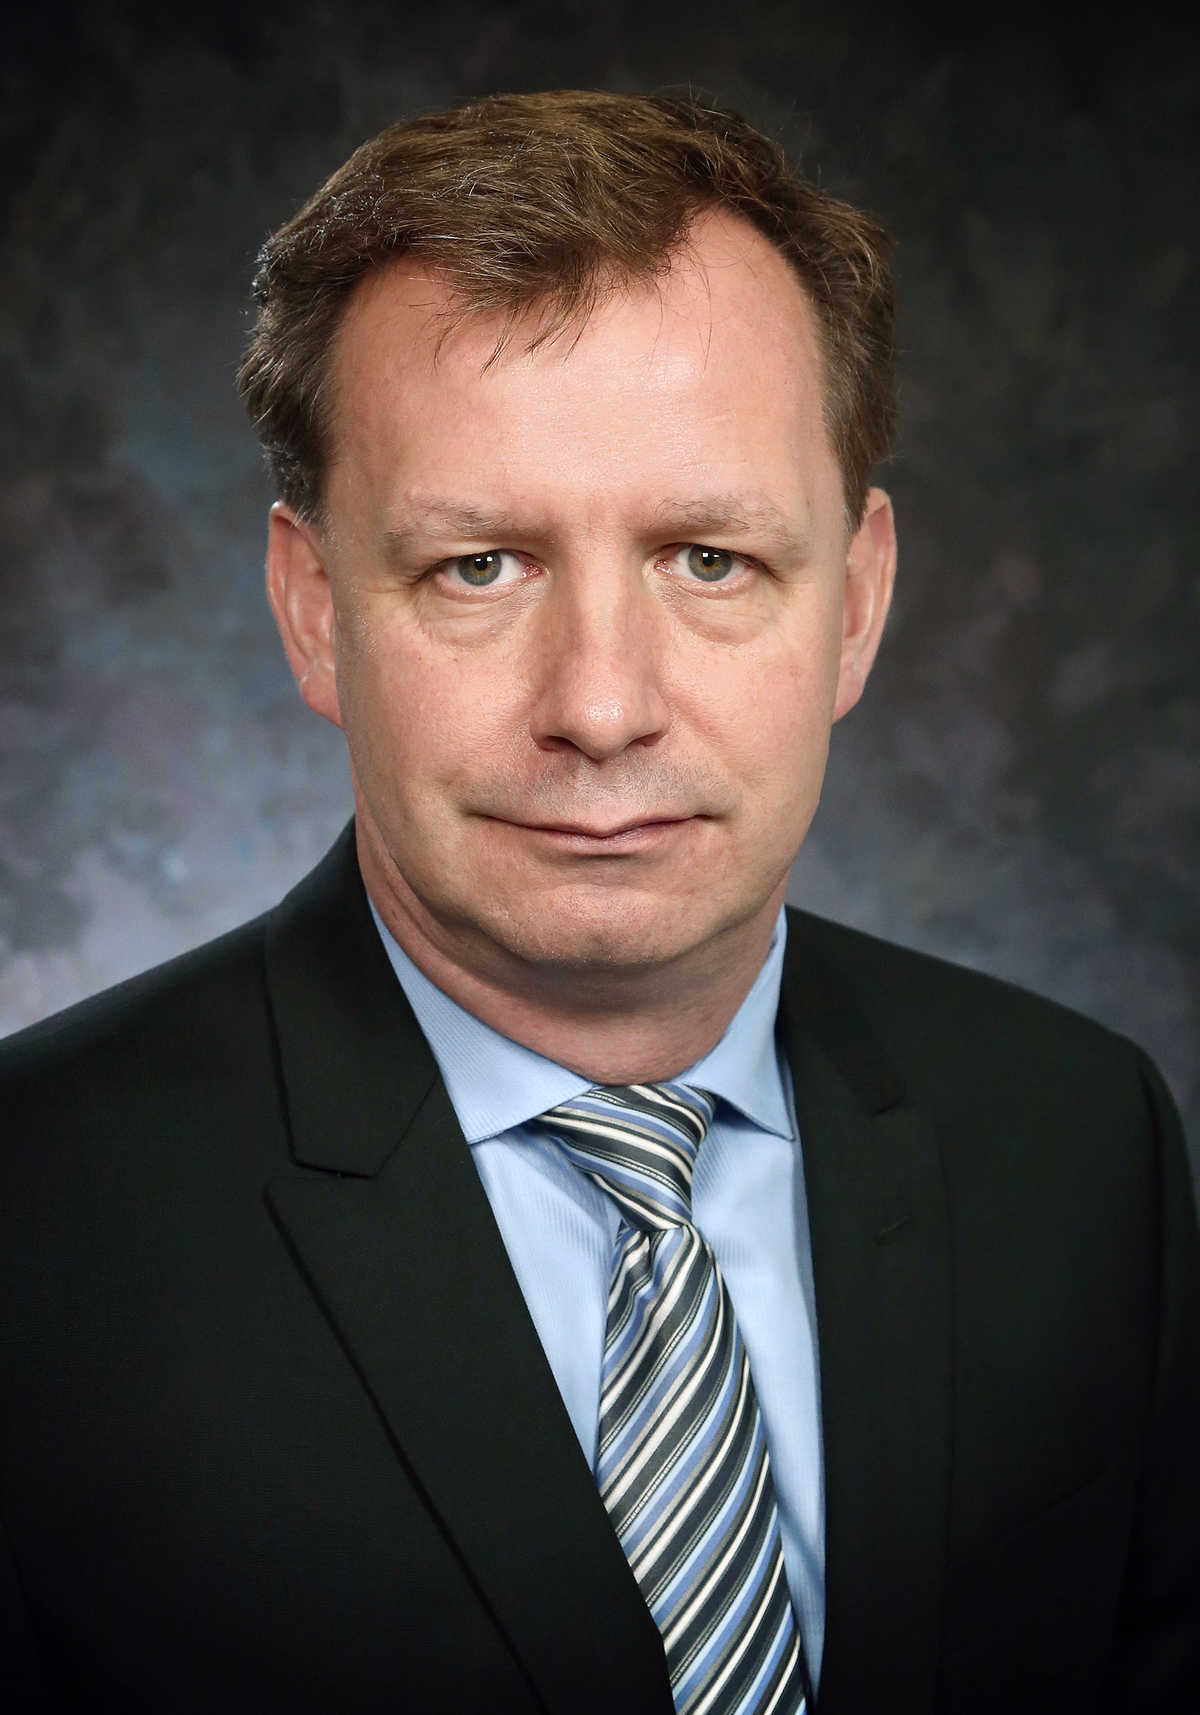 Dr. Klaus Brun, Program Director Fluids and Machinery Engineering Department,  Mechanical Engineering Division